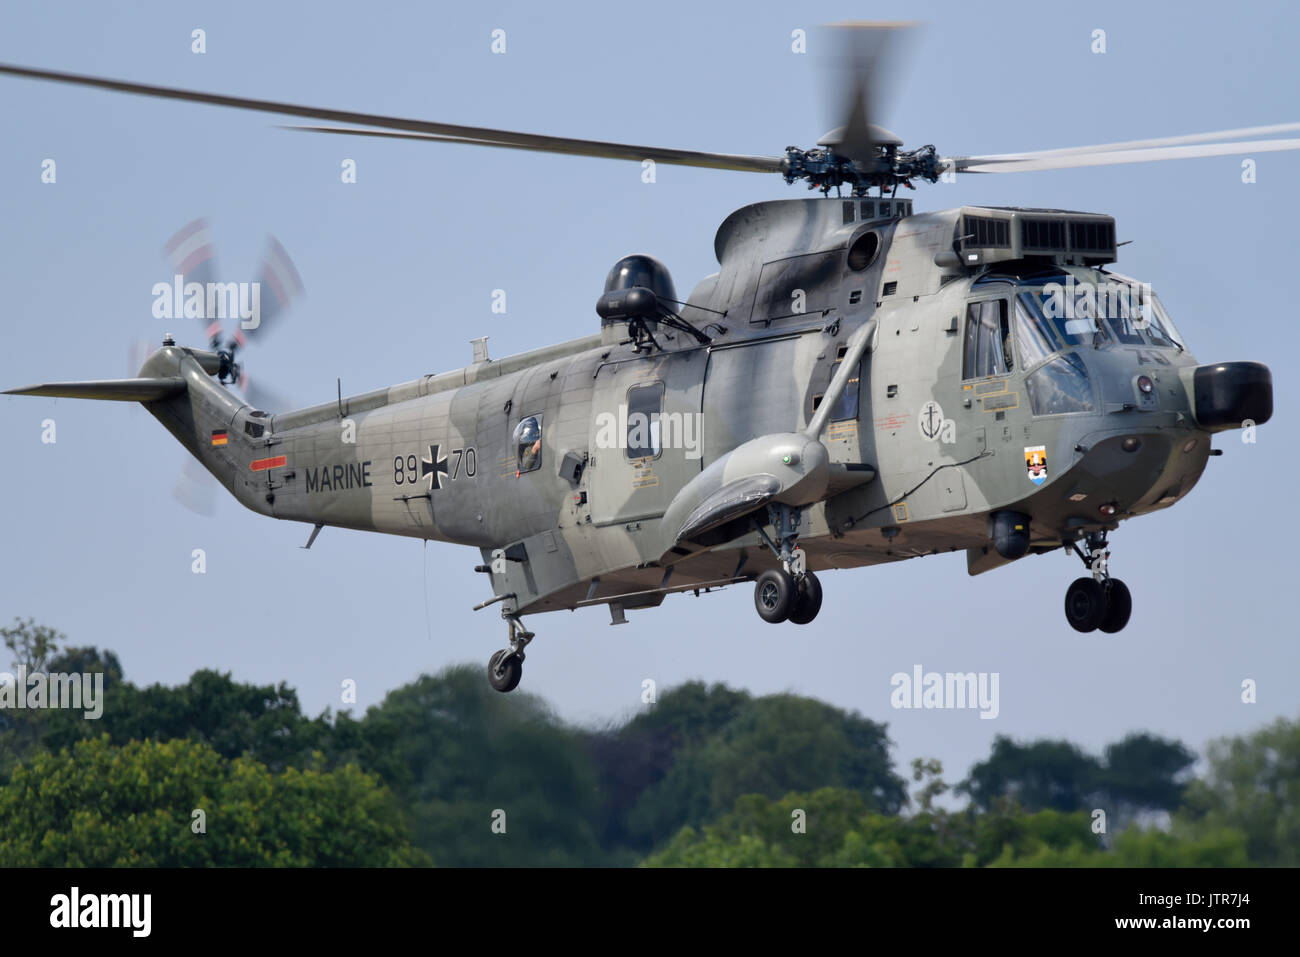 Westland Sikorsy WS-61 Sea King search and rescue helicopter German Navy Mk41 89-70 of Marine MFG5. Space for copy - Stock Image